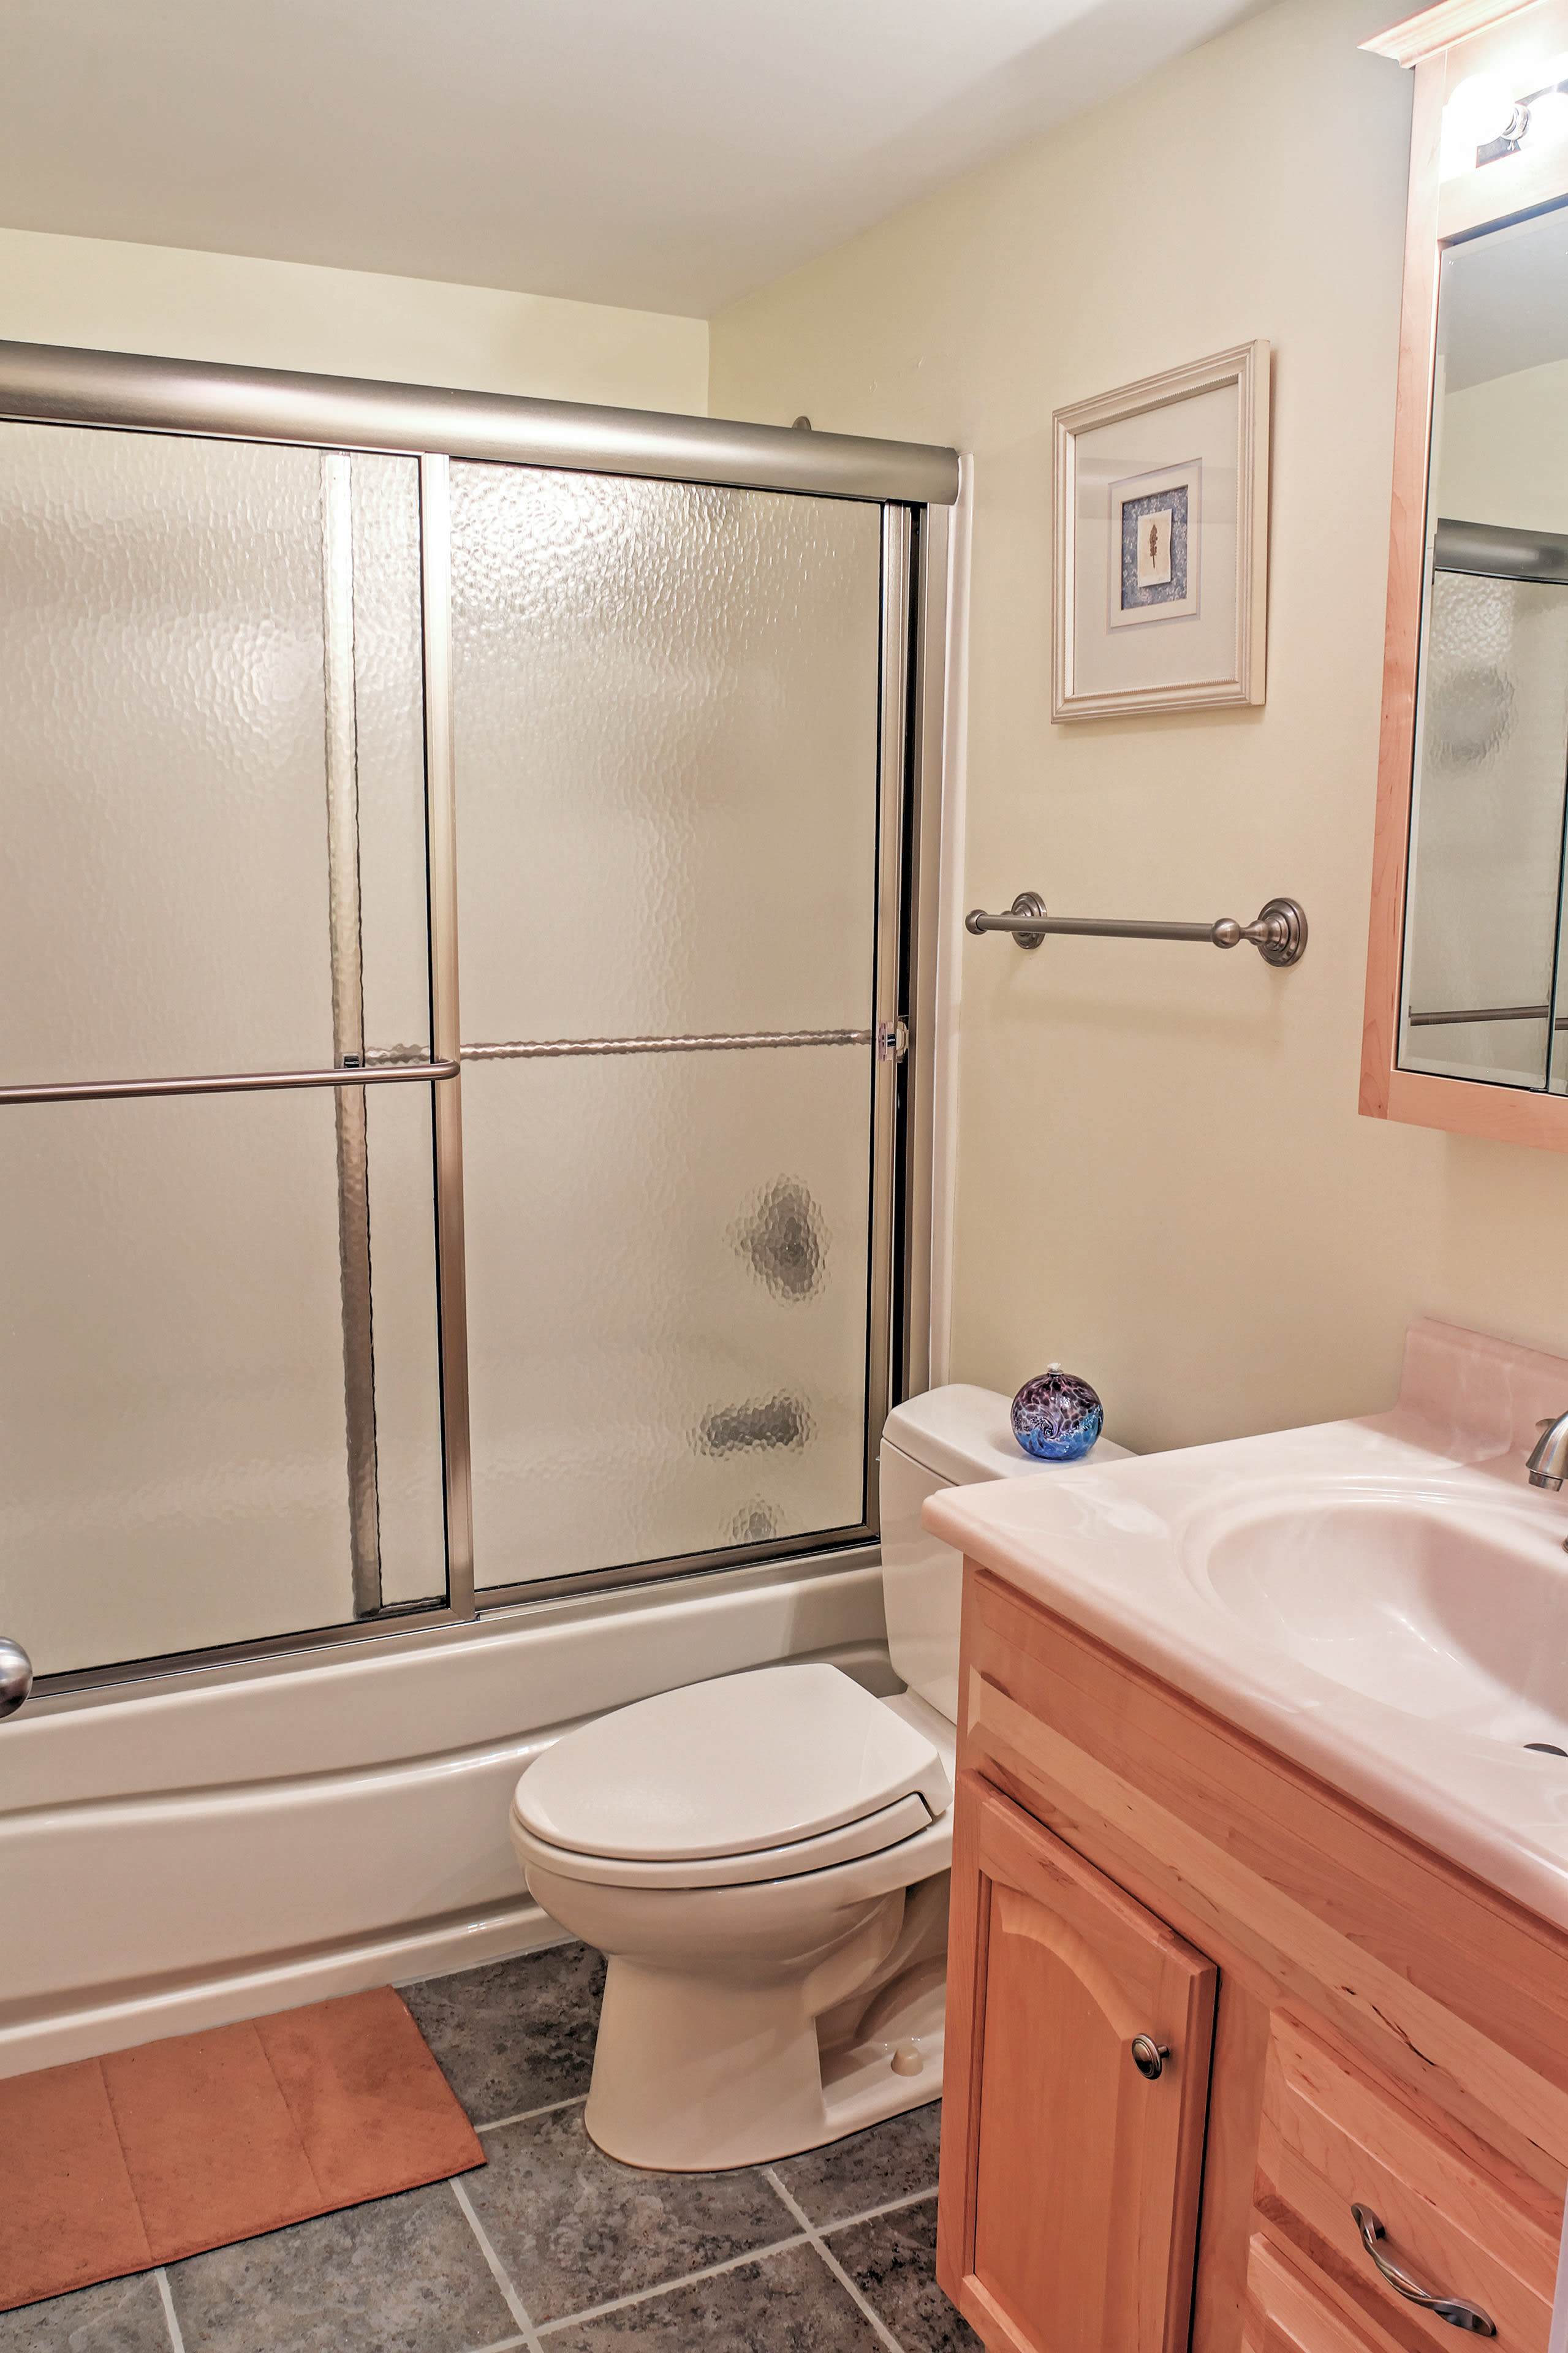 A second full bathroom provides additional privacy.